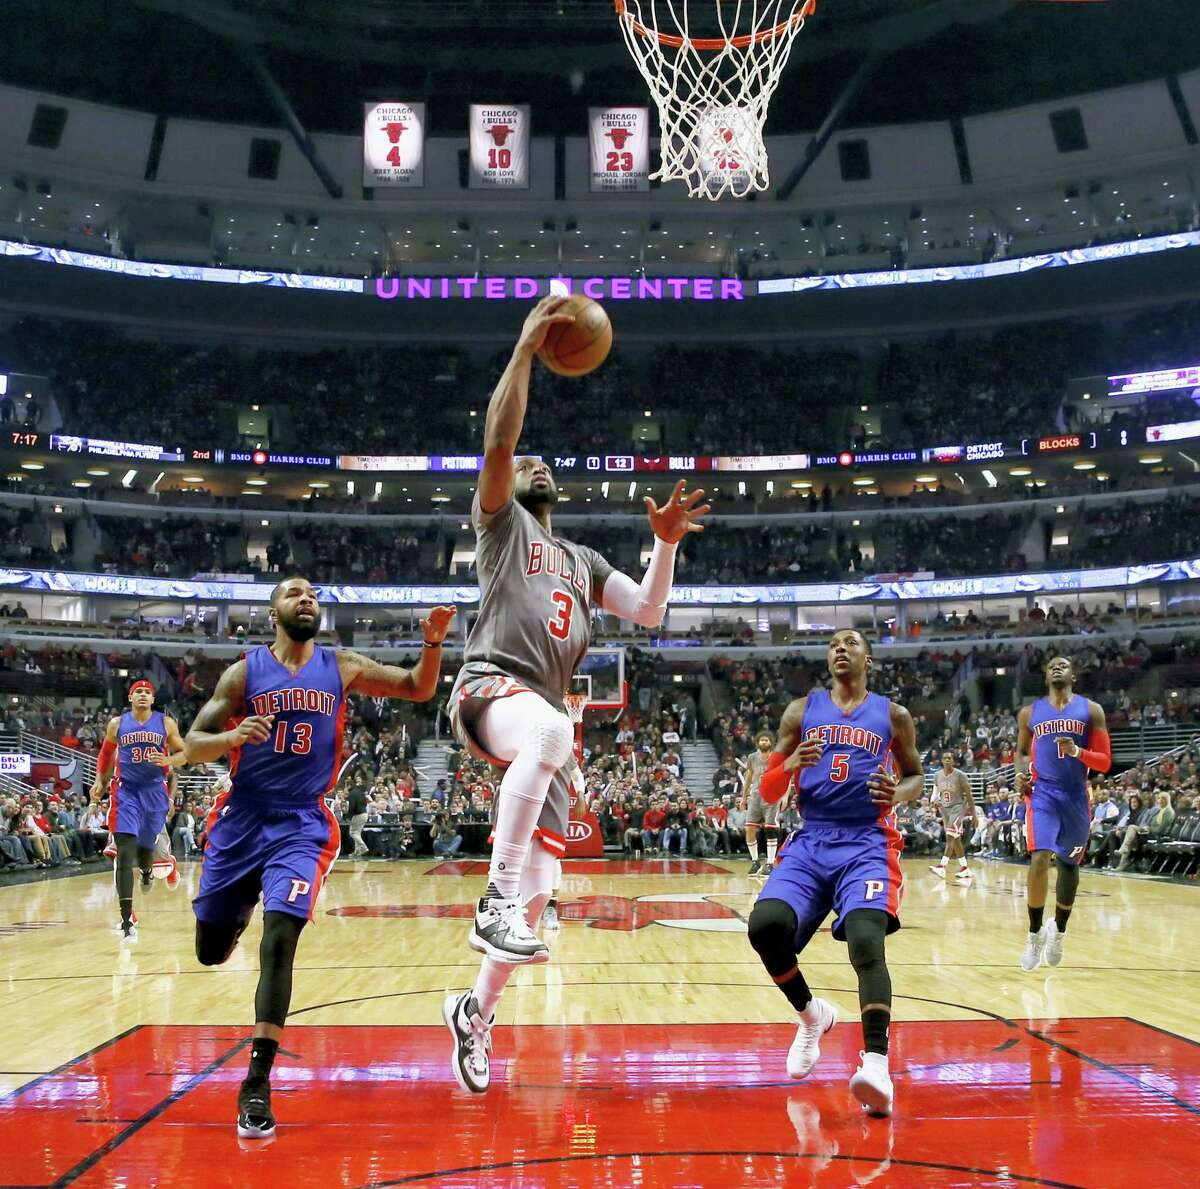 Chicago Bulls' Dwyane Wade (3) scores past Detroit Pistons' Marcus Morris (13) and Kentavious Caldwell-Pope during the first half of an NBA basketball game Monday, Dec. 19, 2016 in Chicago.